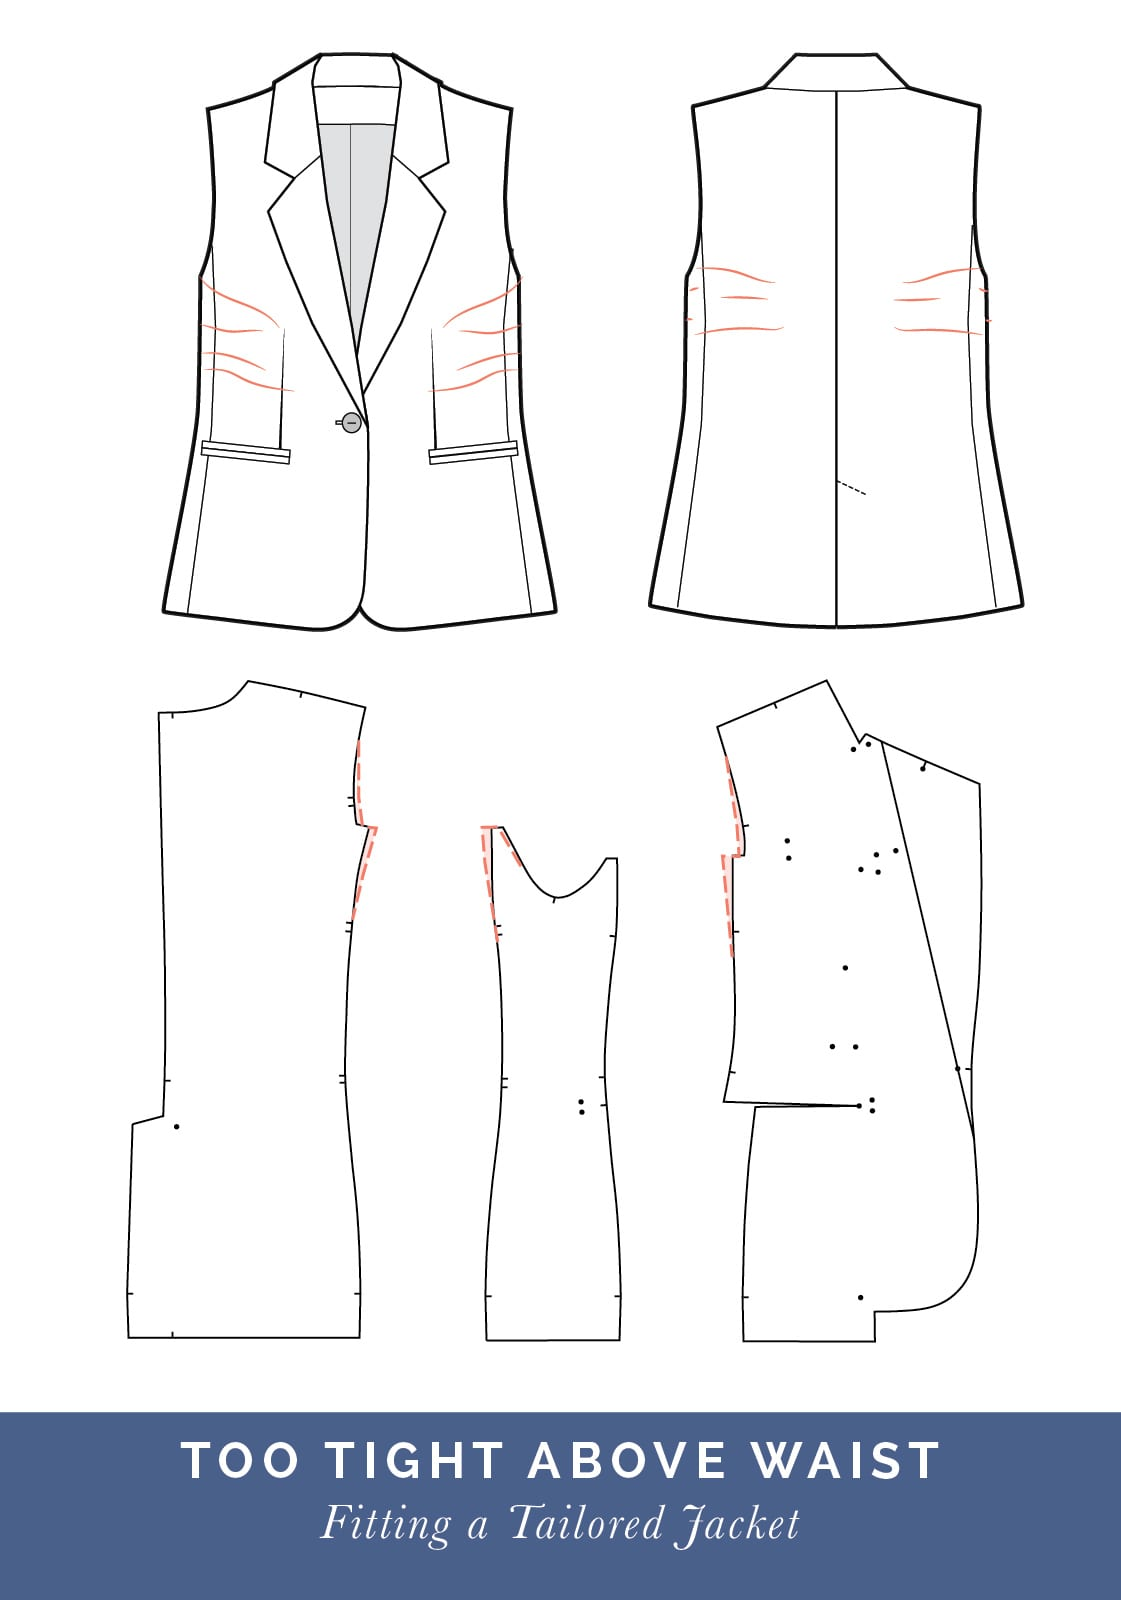 Jacket too tight above waist // How to fit a Tailored jacket or Blazer // Fit adjustment issues and fixes